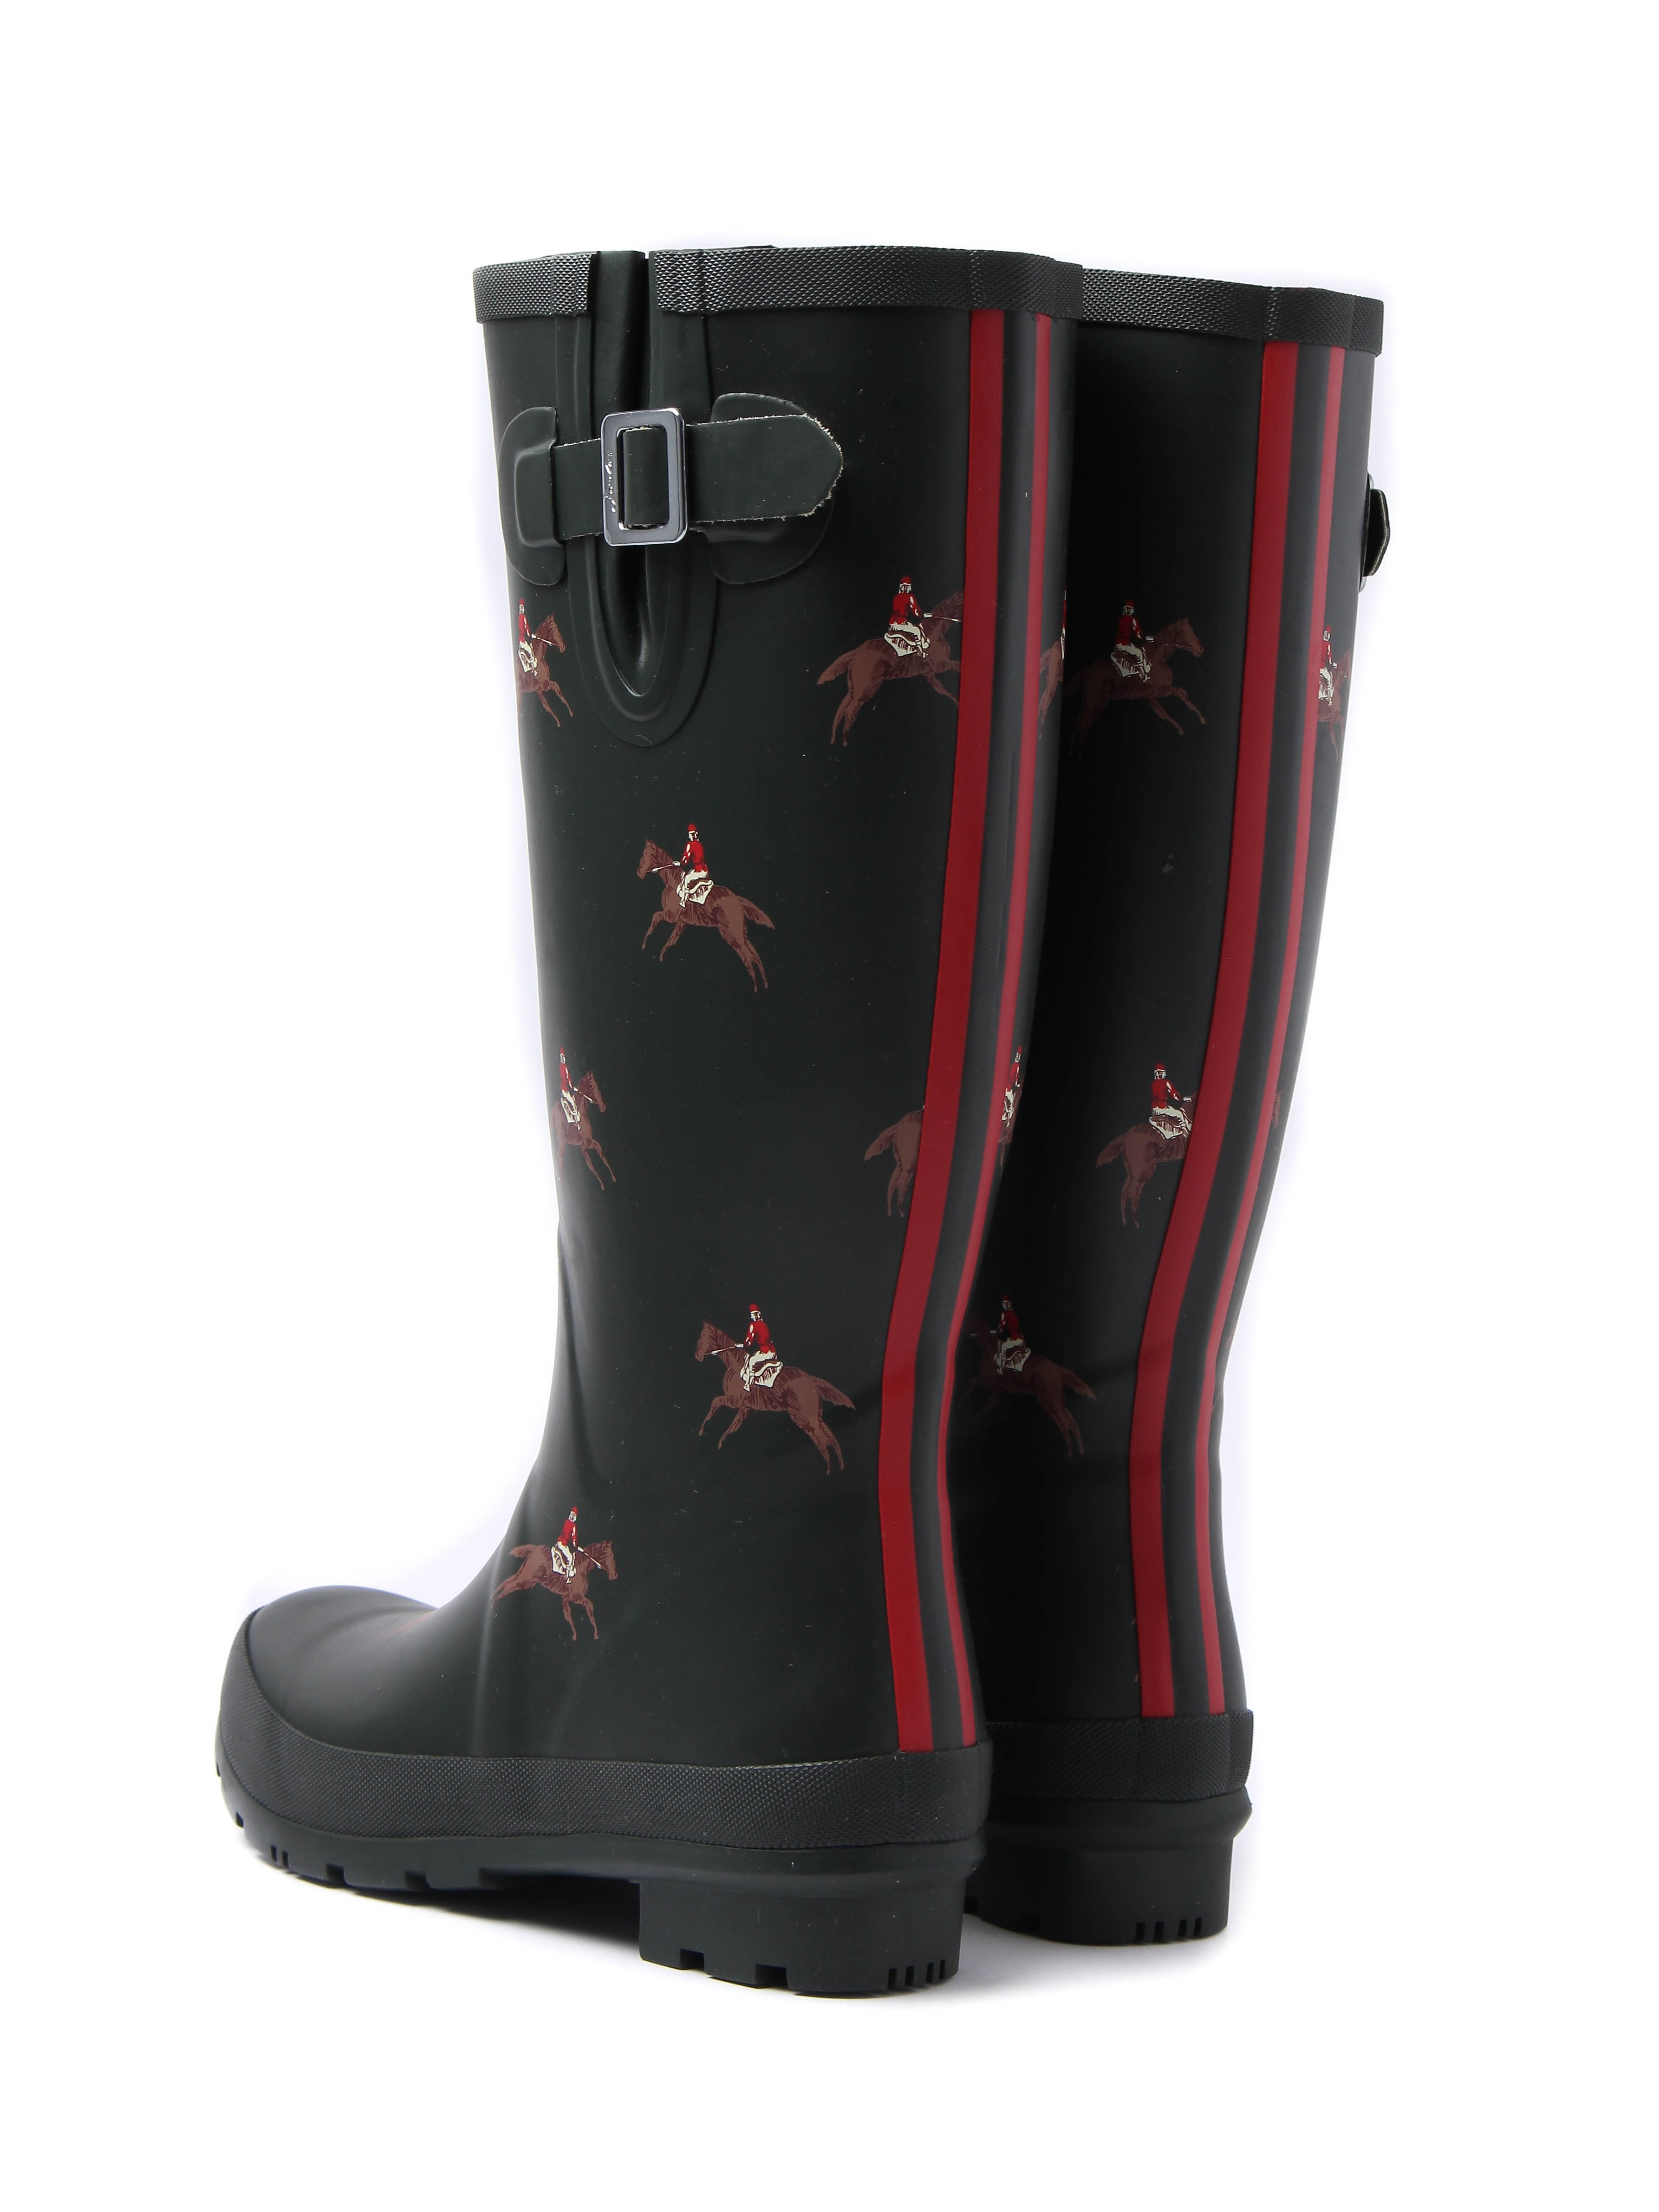 Joules Women's Wellyprint Horse Rider Rubber Wellington Boots - Olive